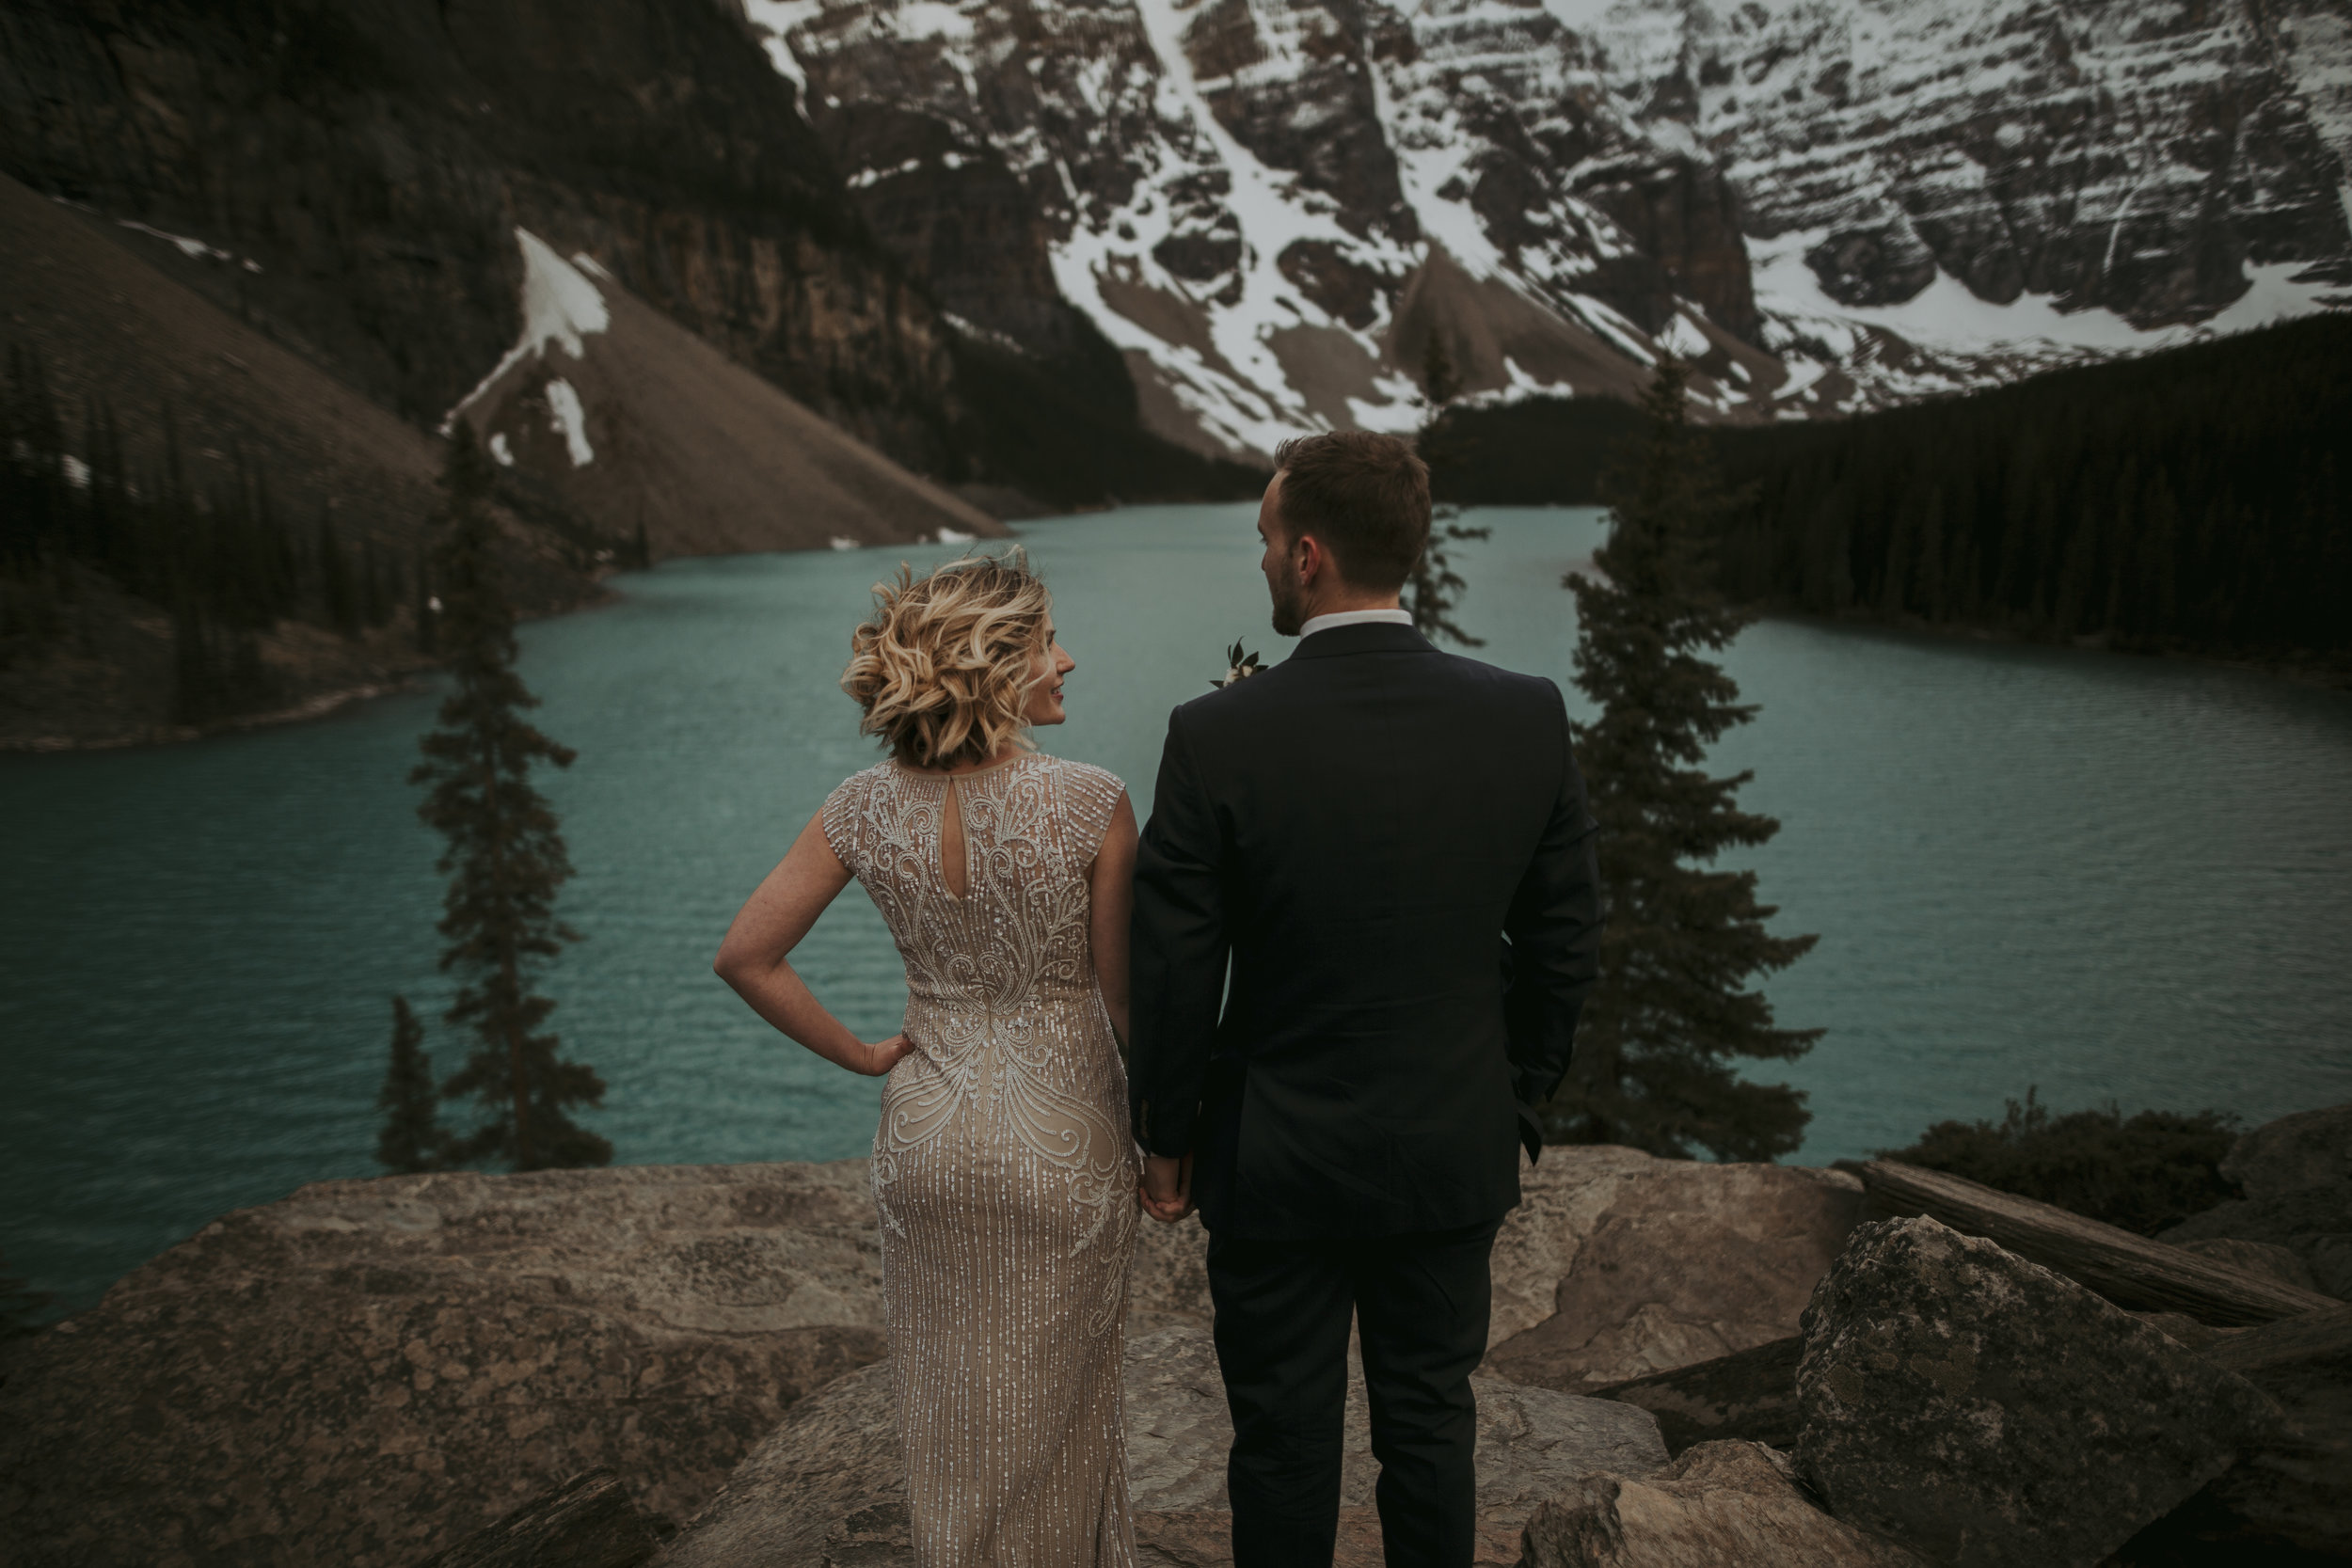 Moraine Lake Elopement, Moraine Lake Photographer, Banff Elopement Photographer, Banff Photographer, Banff Elopement, Emerald Lake Elopement